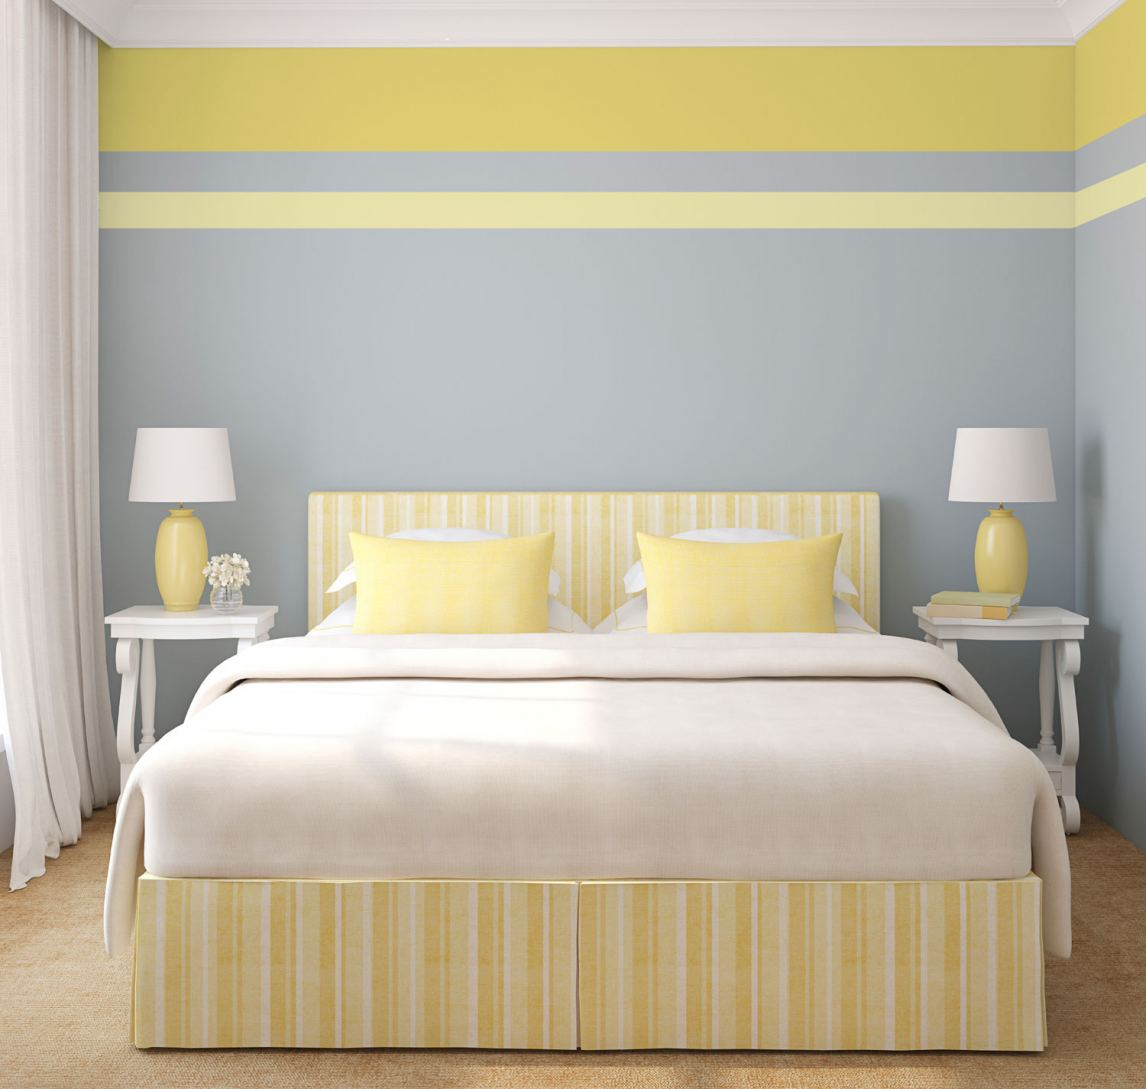 My Wonderful Walls Announces New Stripes and Borders Wall Decals ...